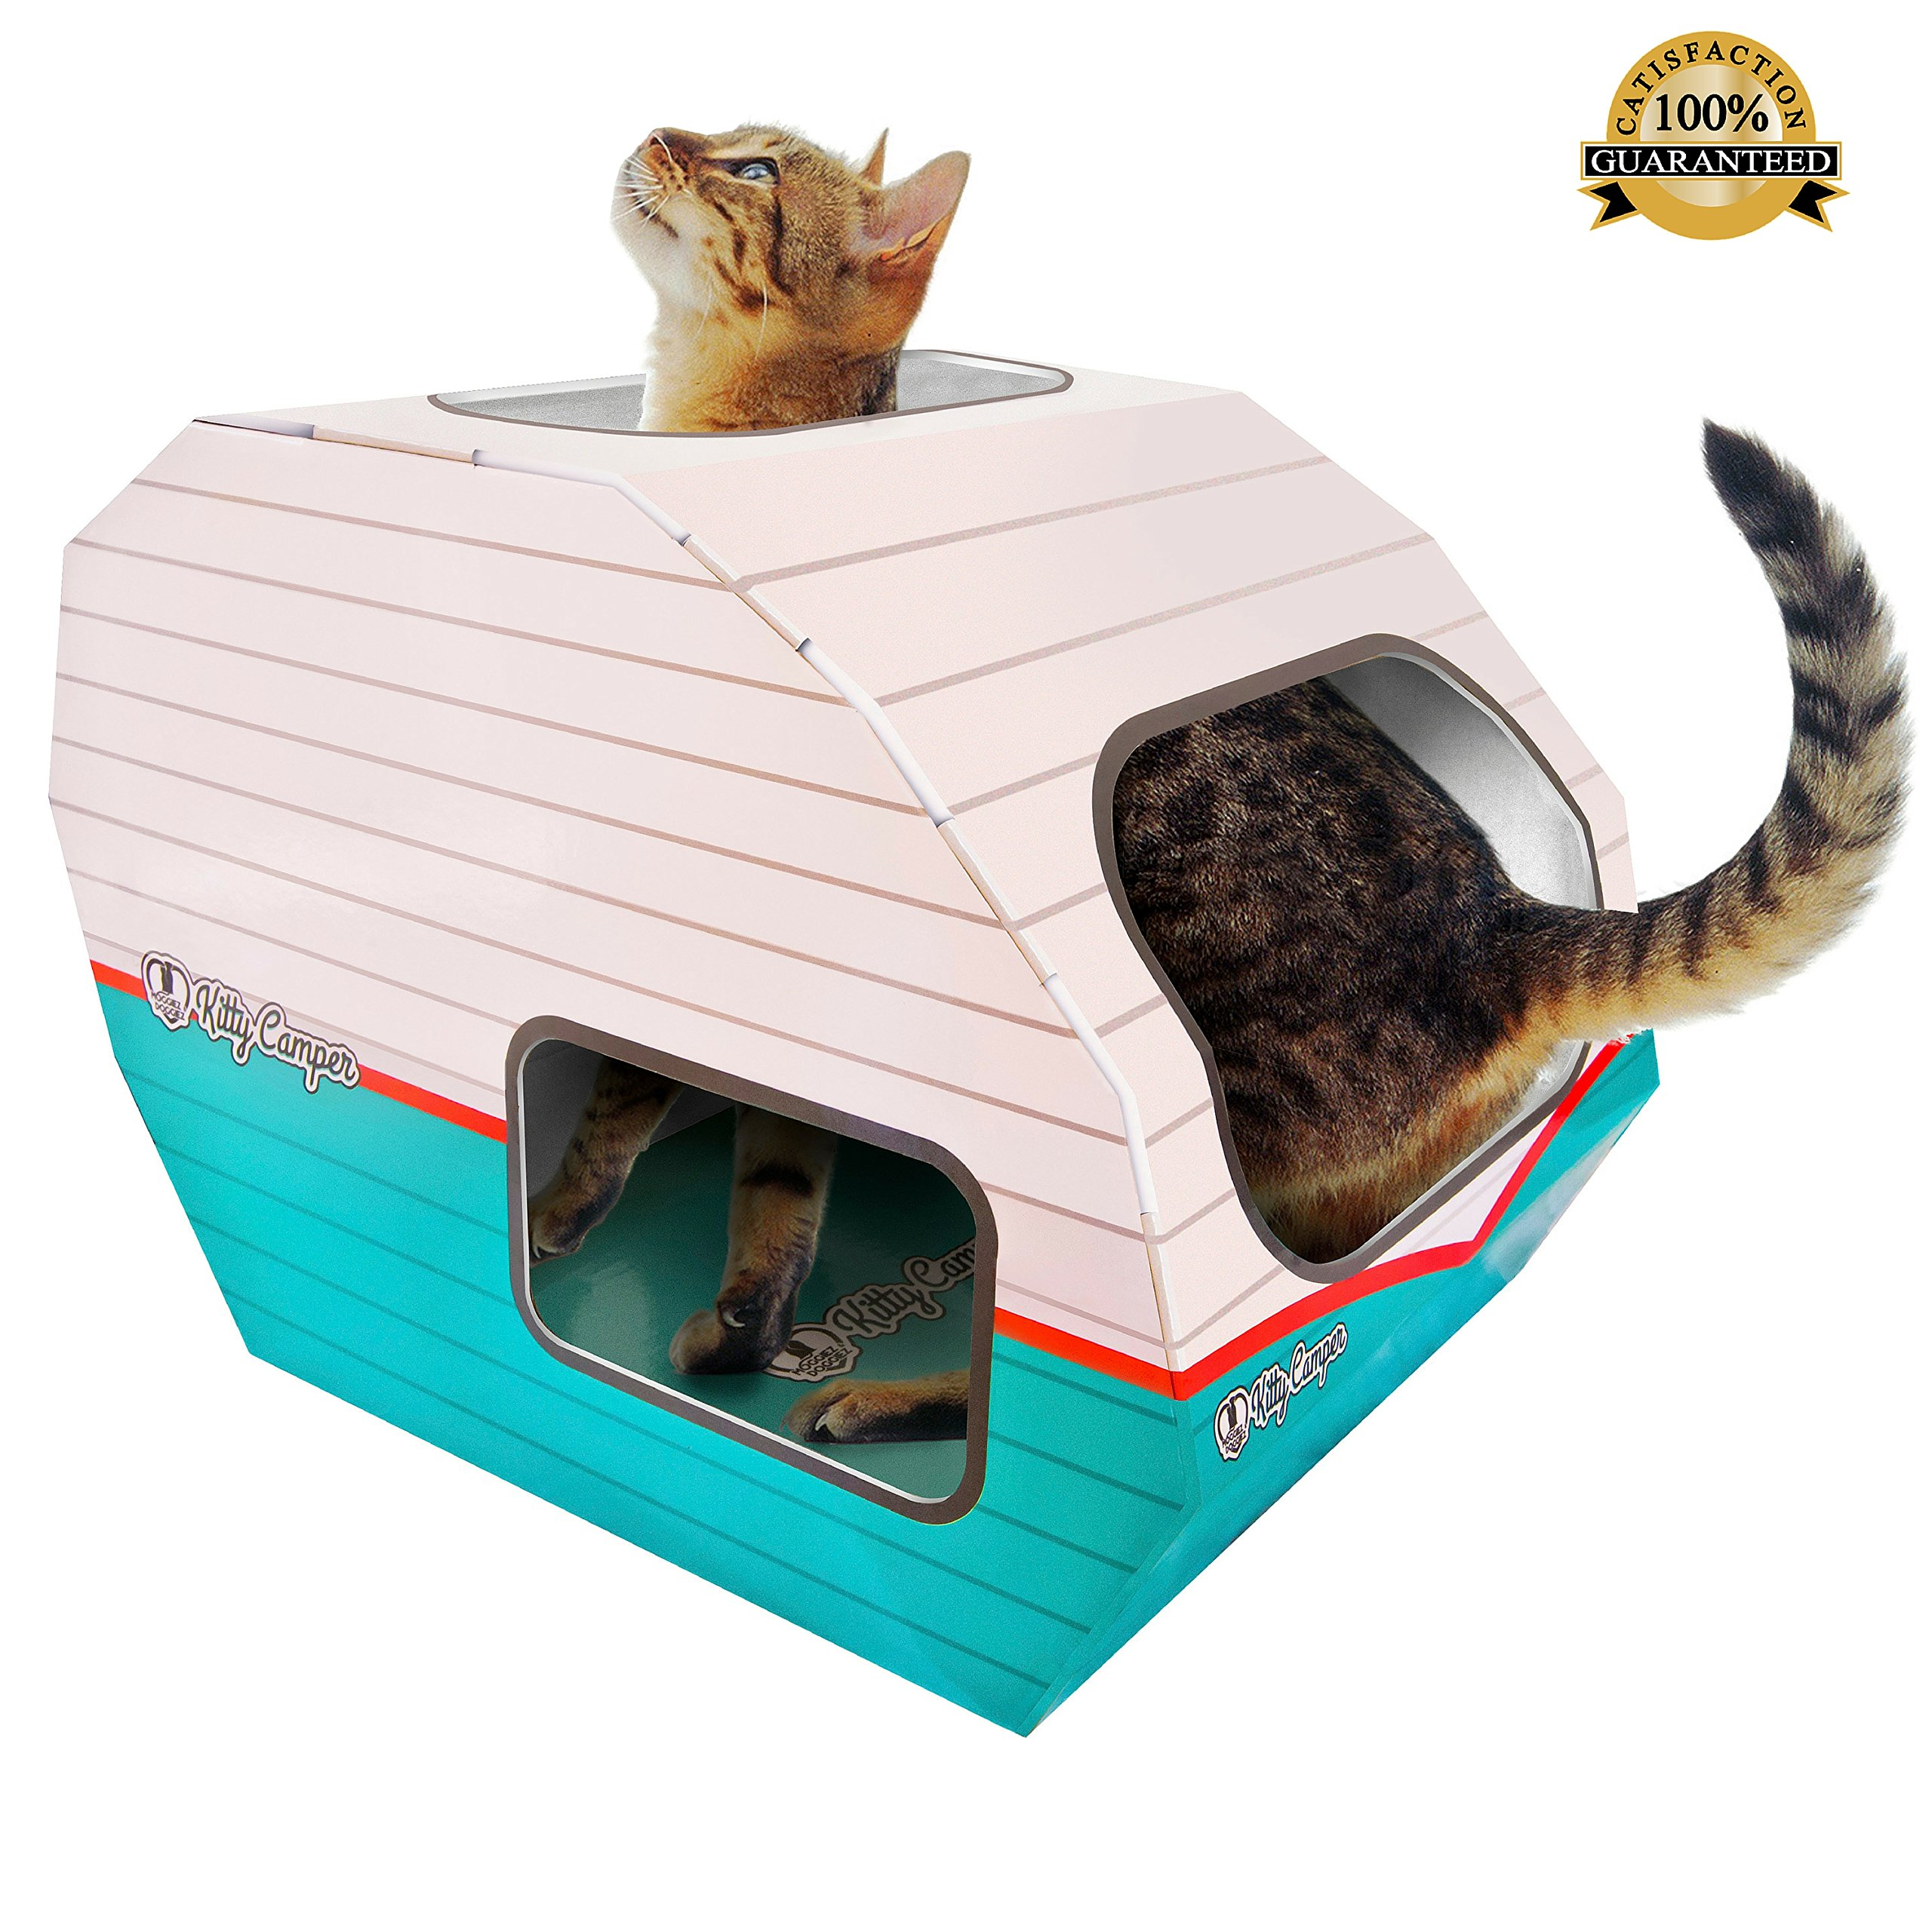 No 1 Rated Cat Toys & Playhouse- Best Indoor Cardboard Cat House & Toy